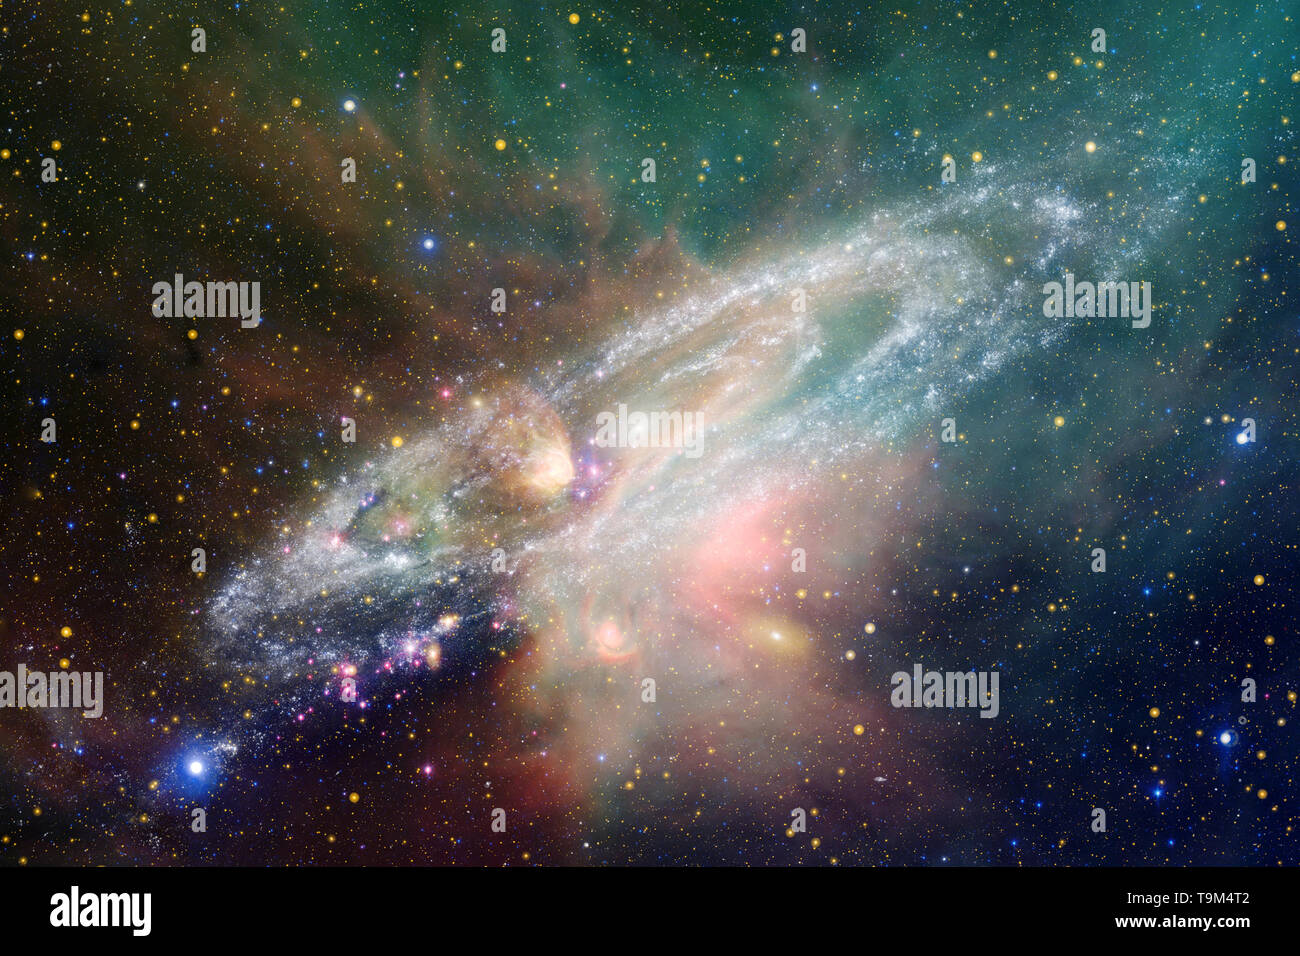 galaxies stars and nebulas in awesome space image colorful science fiction wallpaper elements of this image furnished by nasa T9M4T2